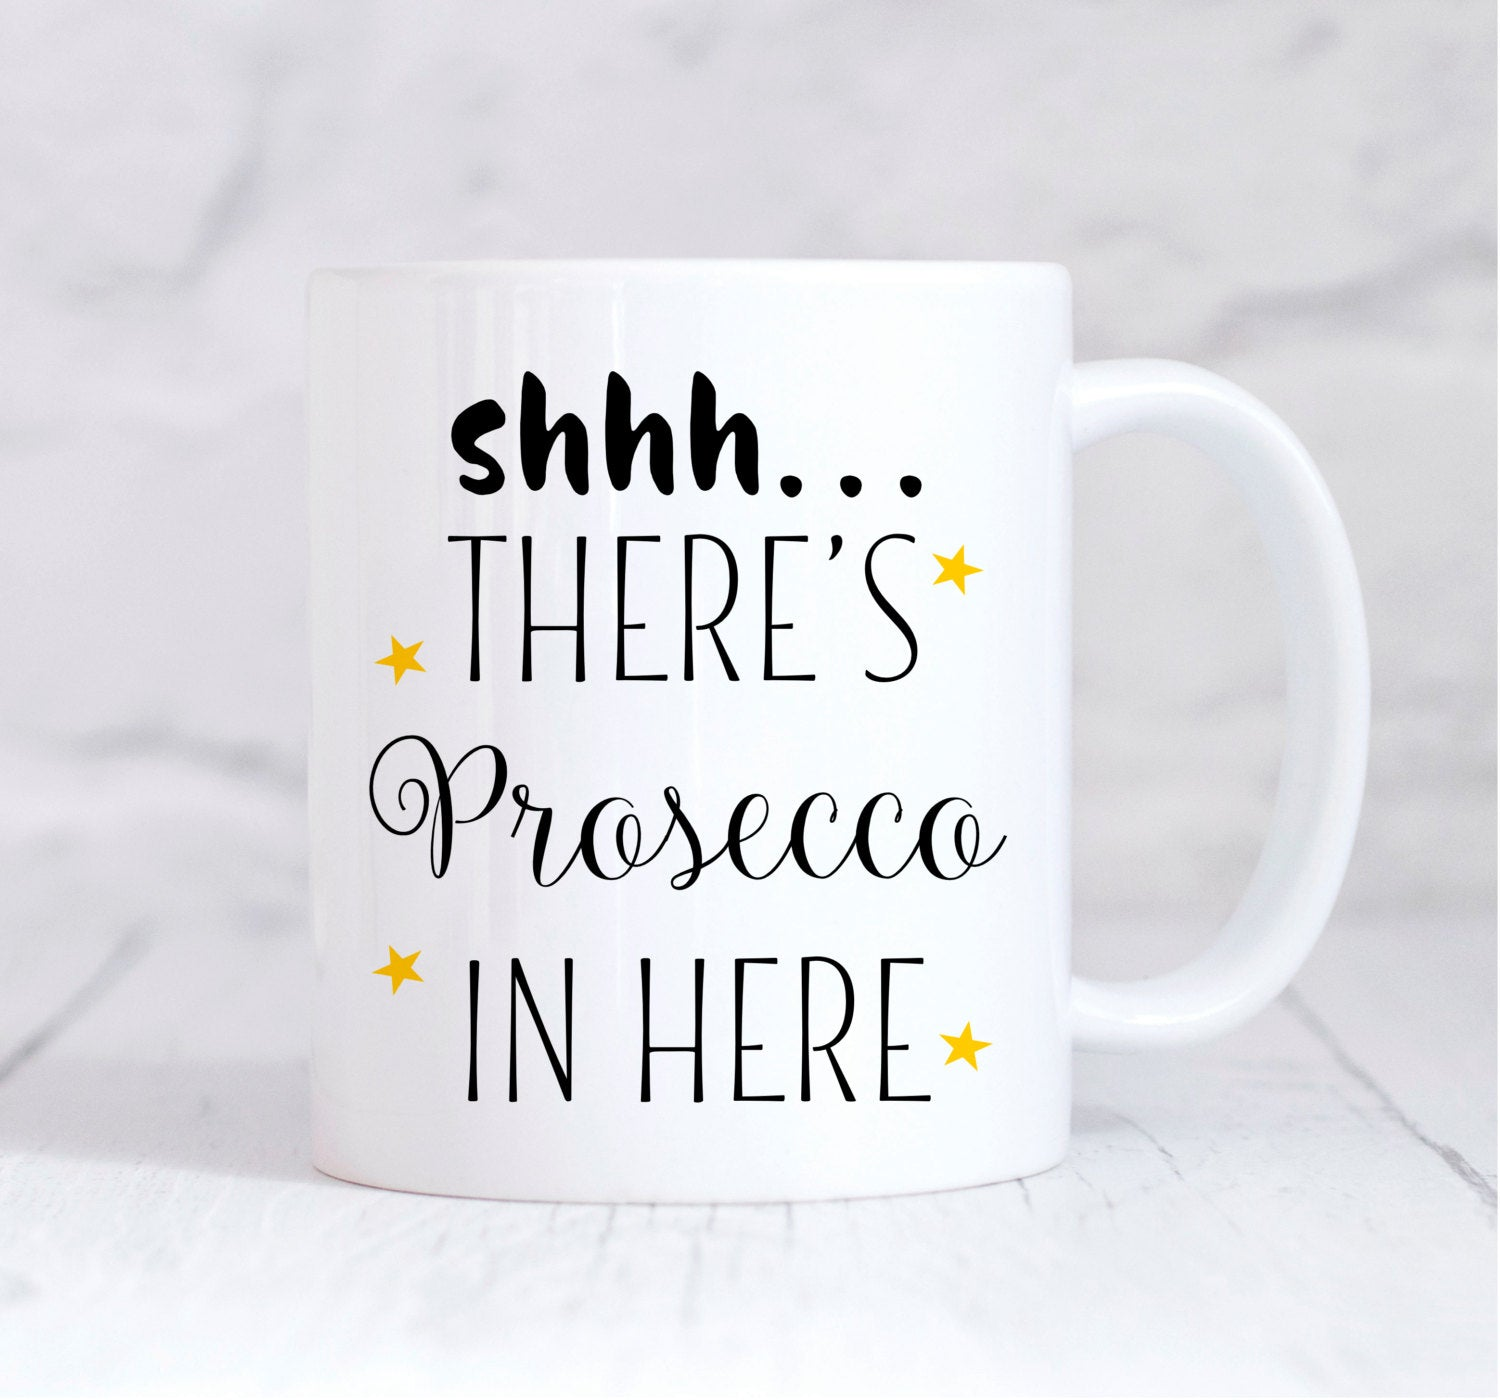 Prosecco Lover Coffee mug, Shh There's Prosecco in here, funny mug, coffee mug, Wine Lover, Funny Quote Mug, Gift For Her, Novelty Mug, UK